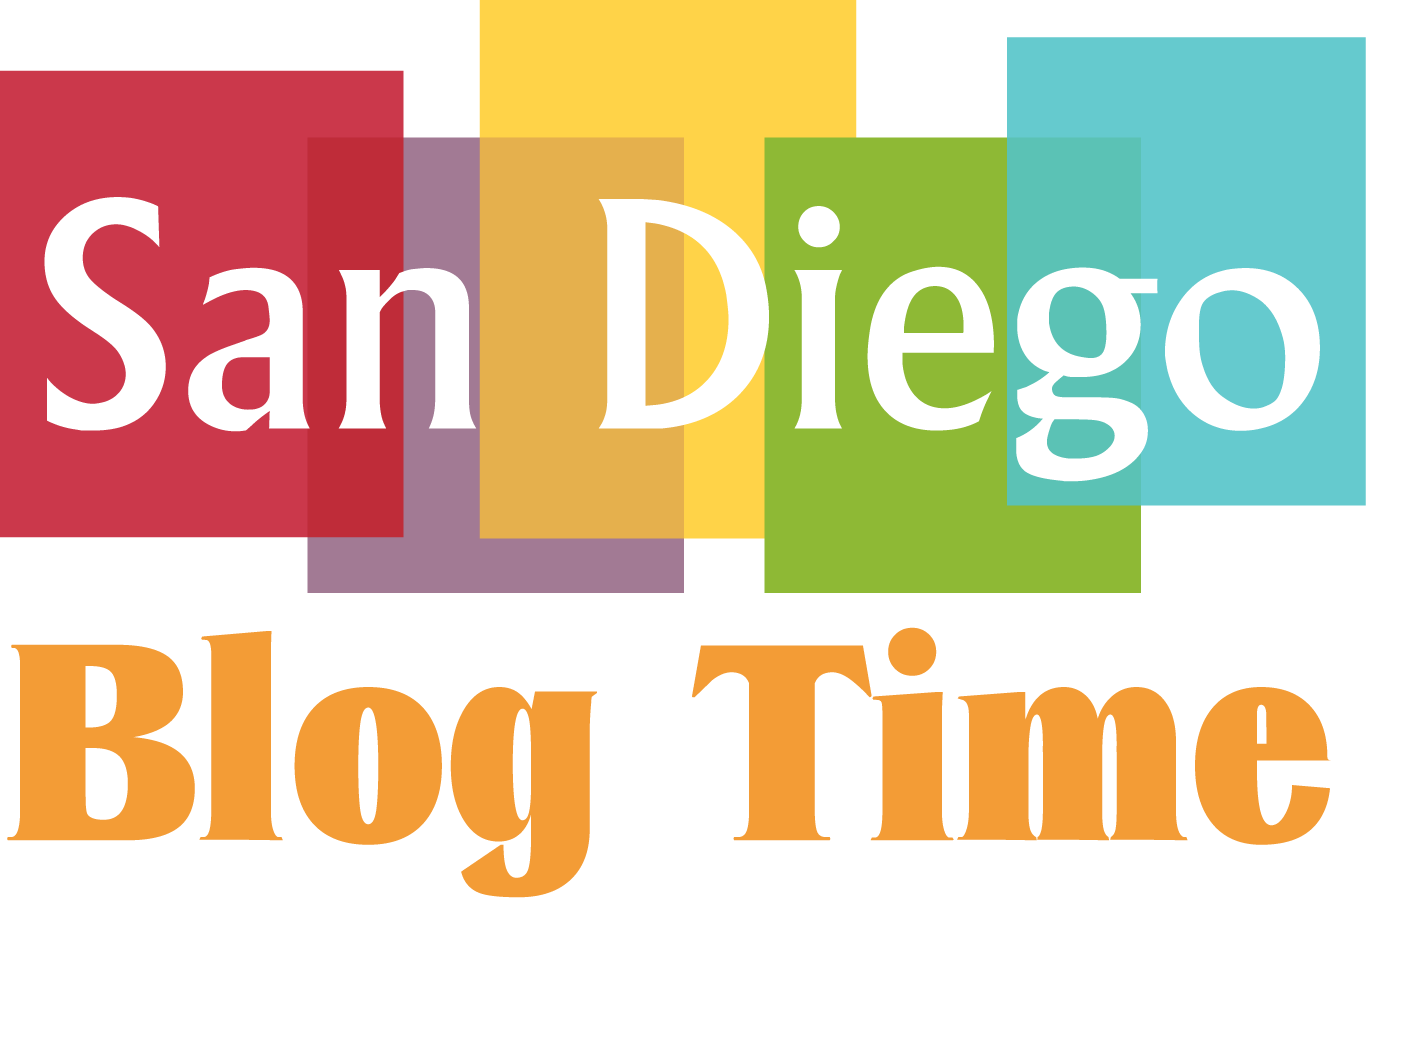 San Diego Blog, curated by a Publisher. It's San Diego blog time!